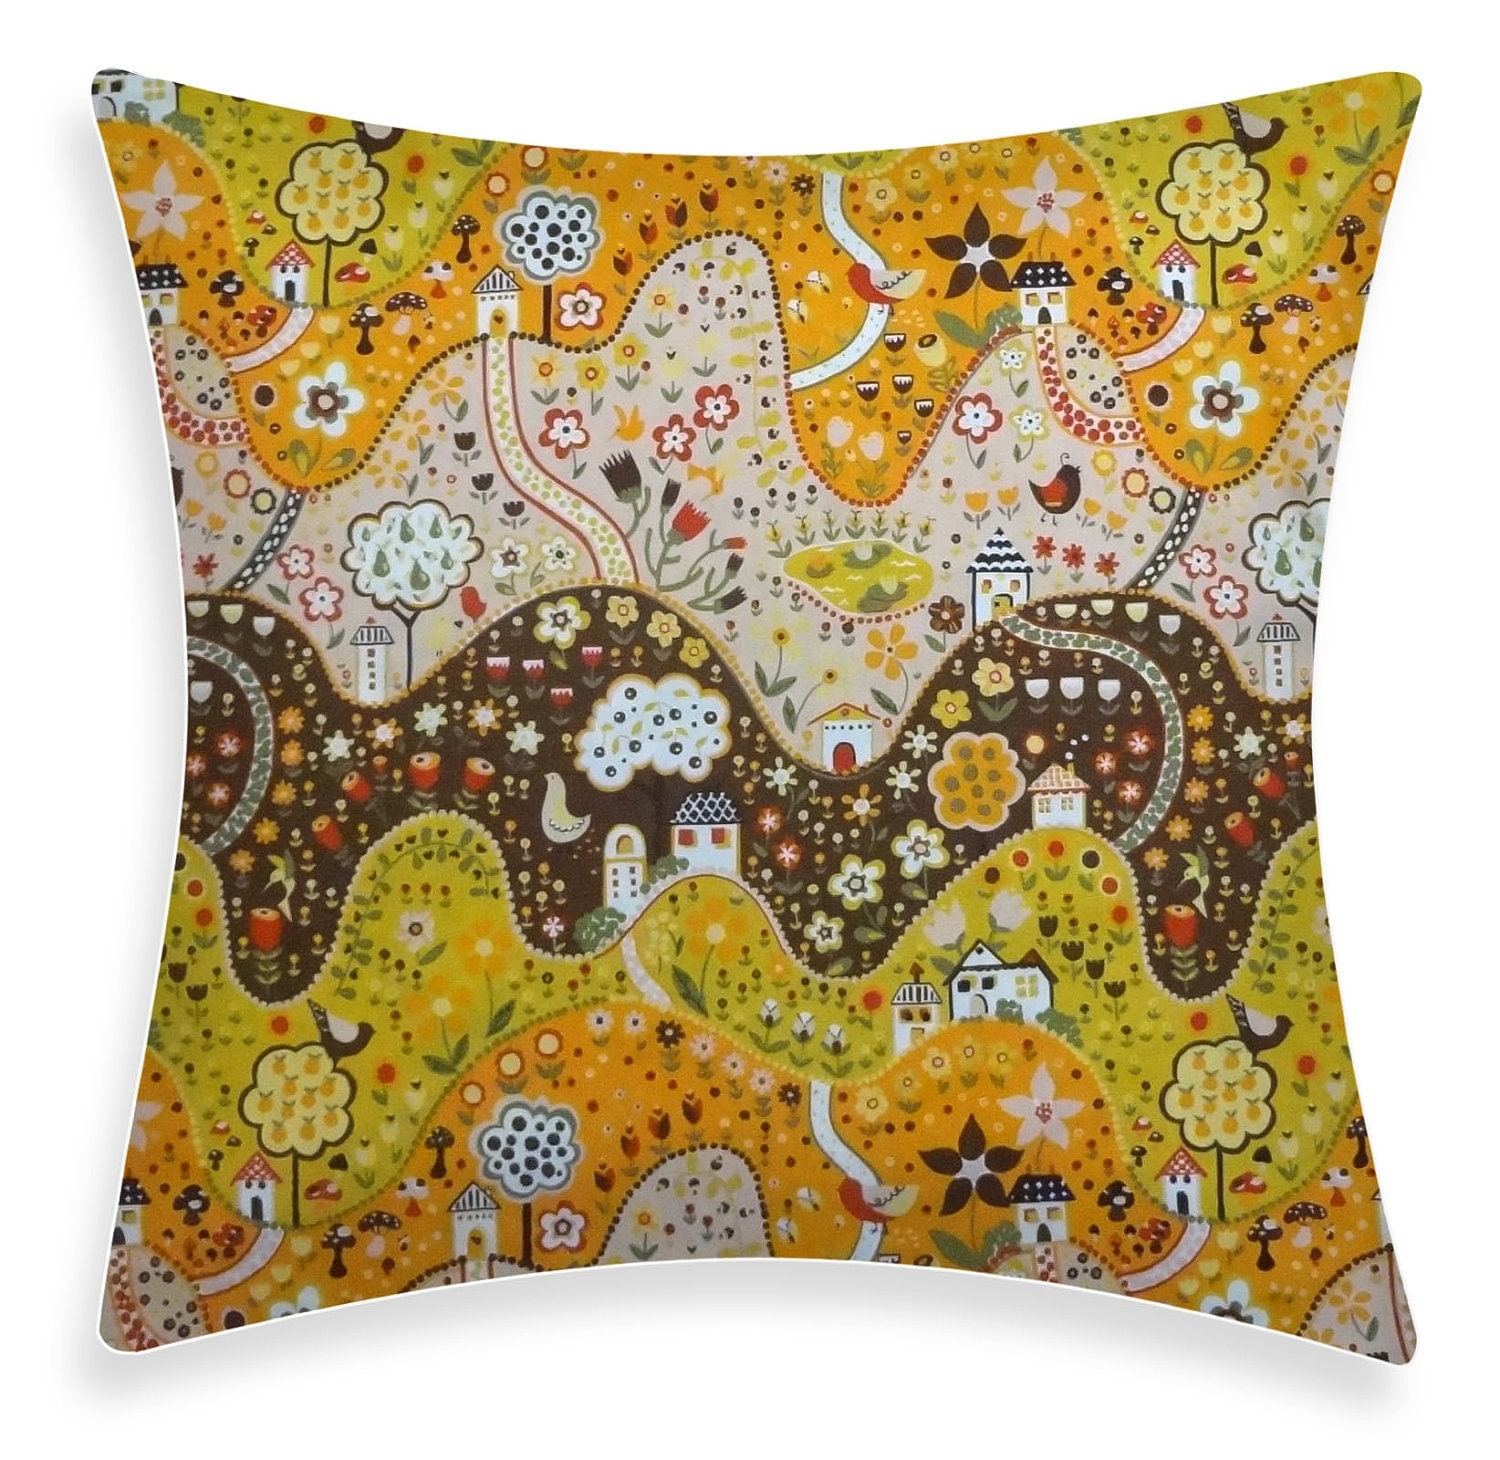 Yellow Brown Throw Pillows : Etsy - Your place to buy and sell all things handmade, vintage, and supplies